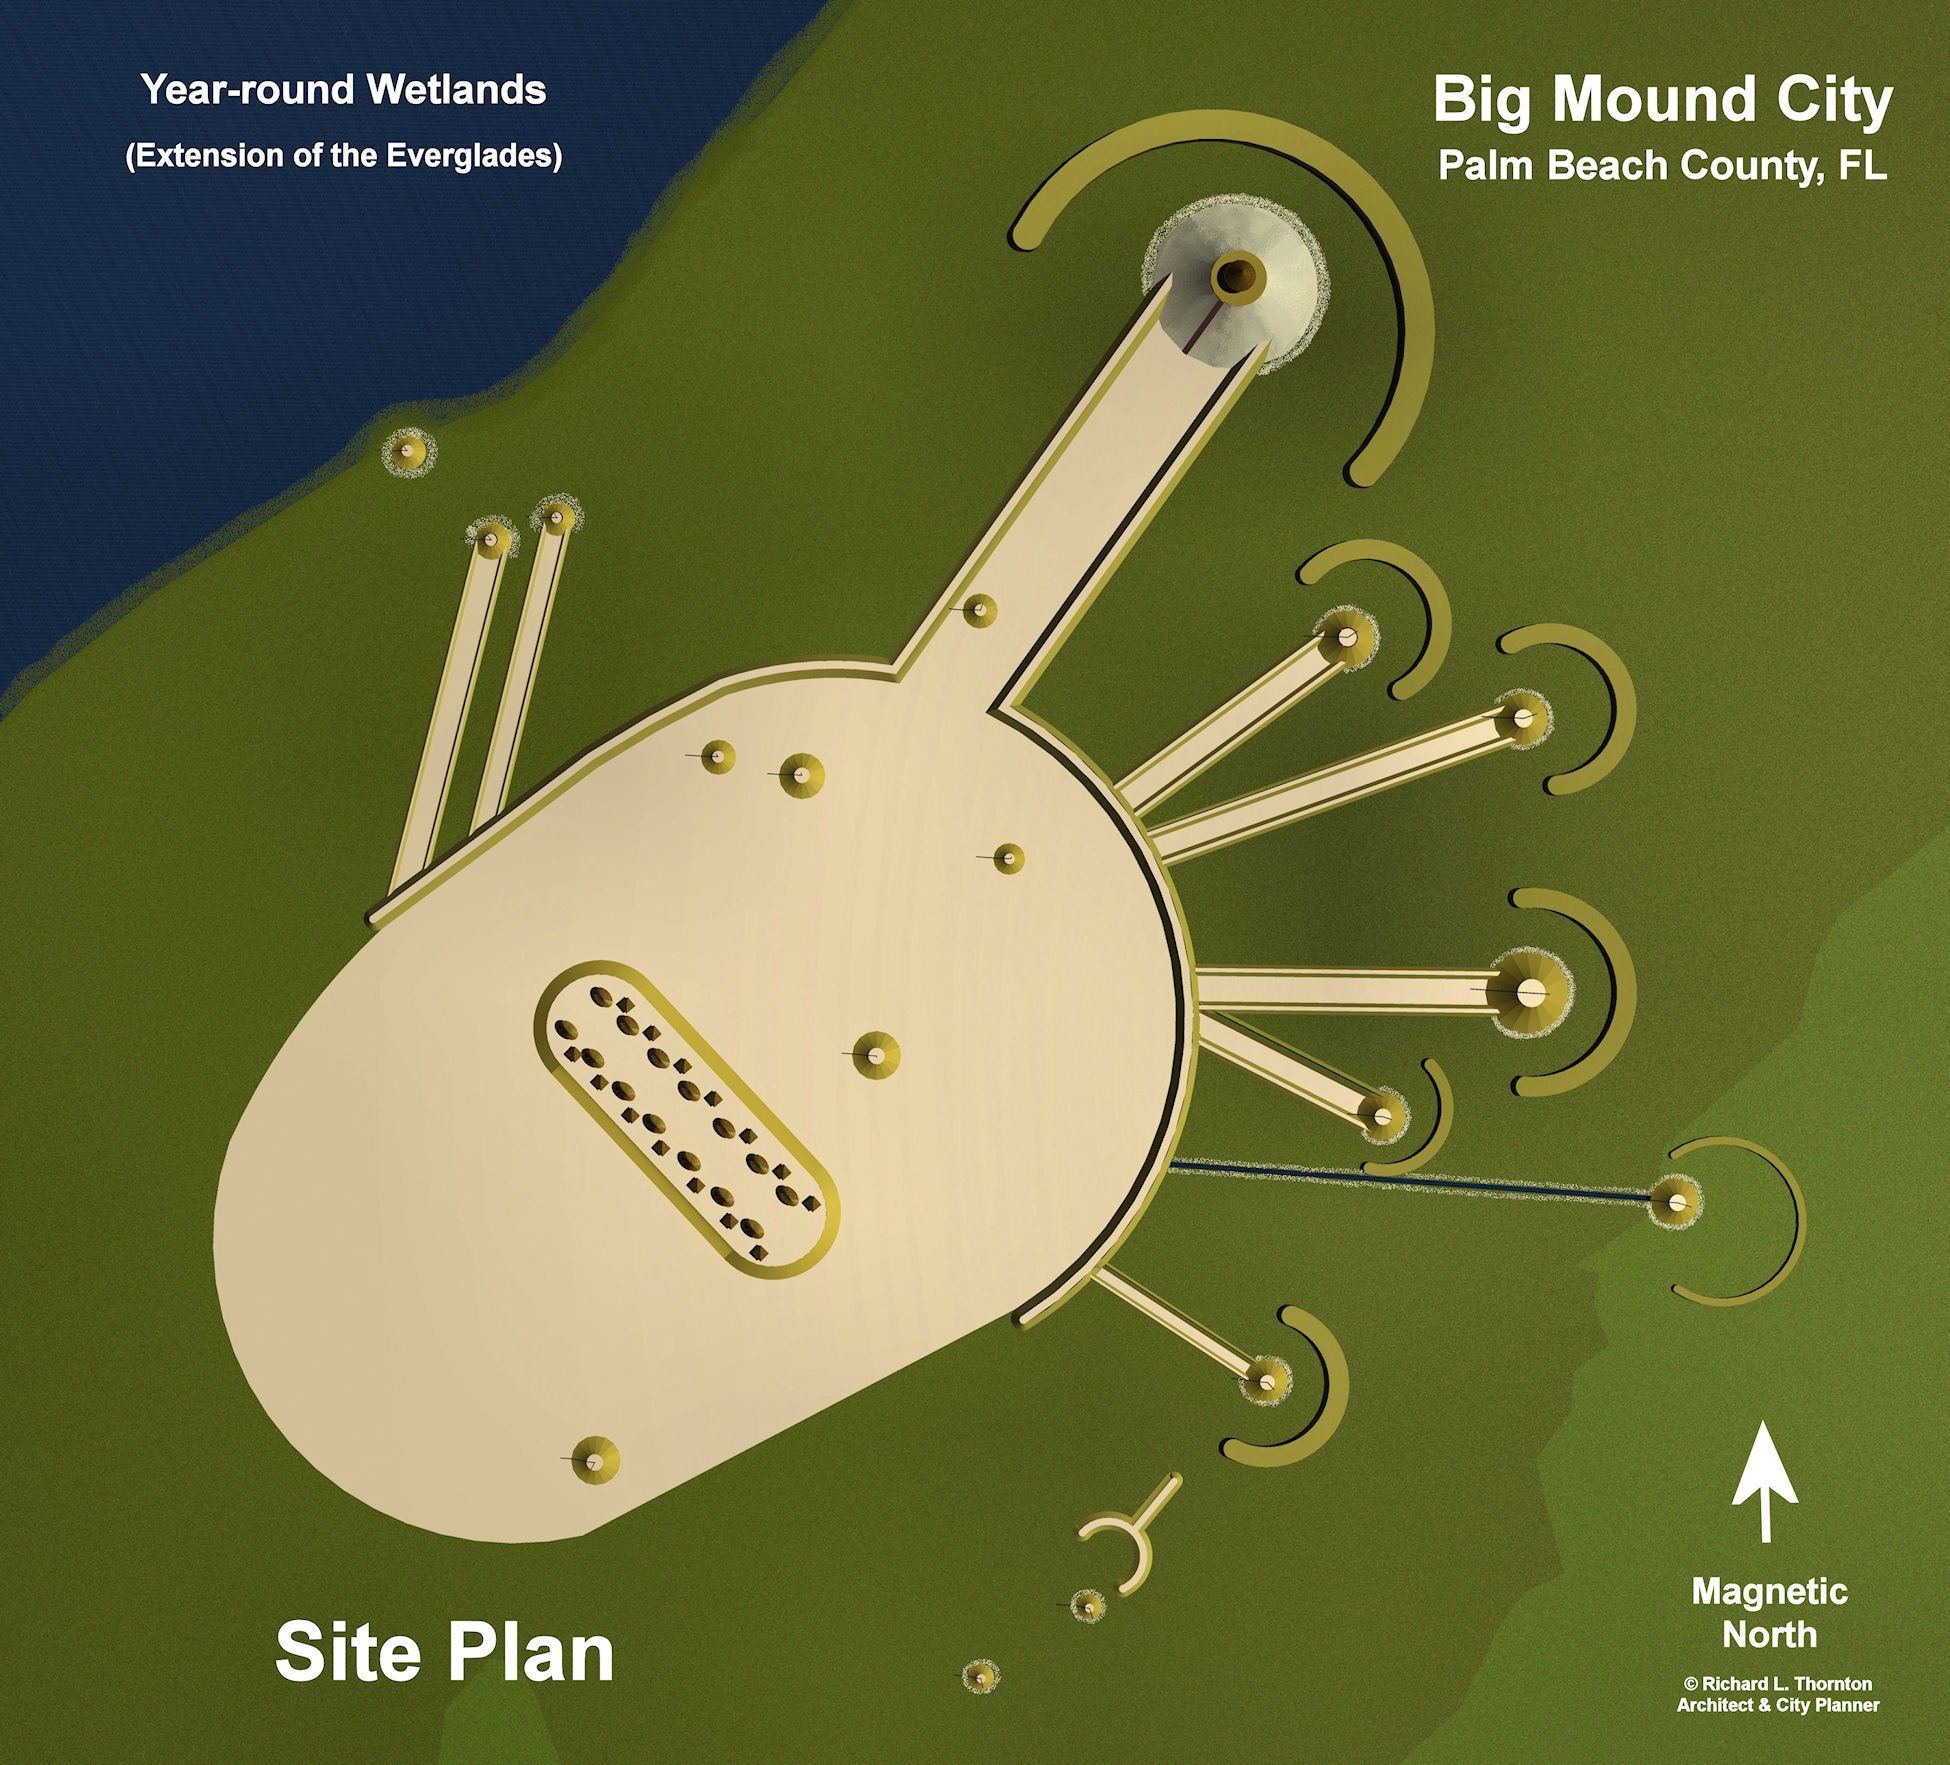 Site Plan of Big Mound City archaeological zone